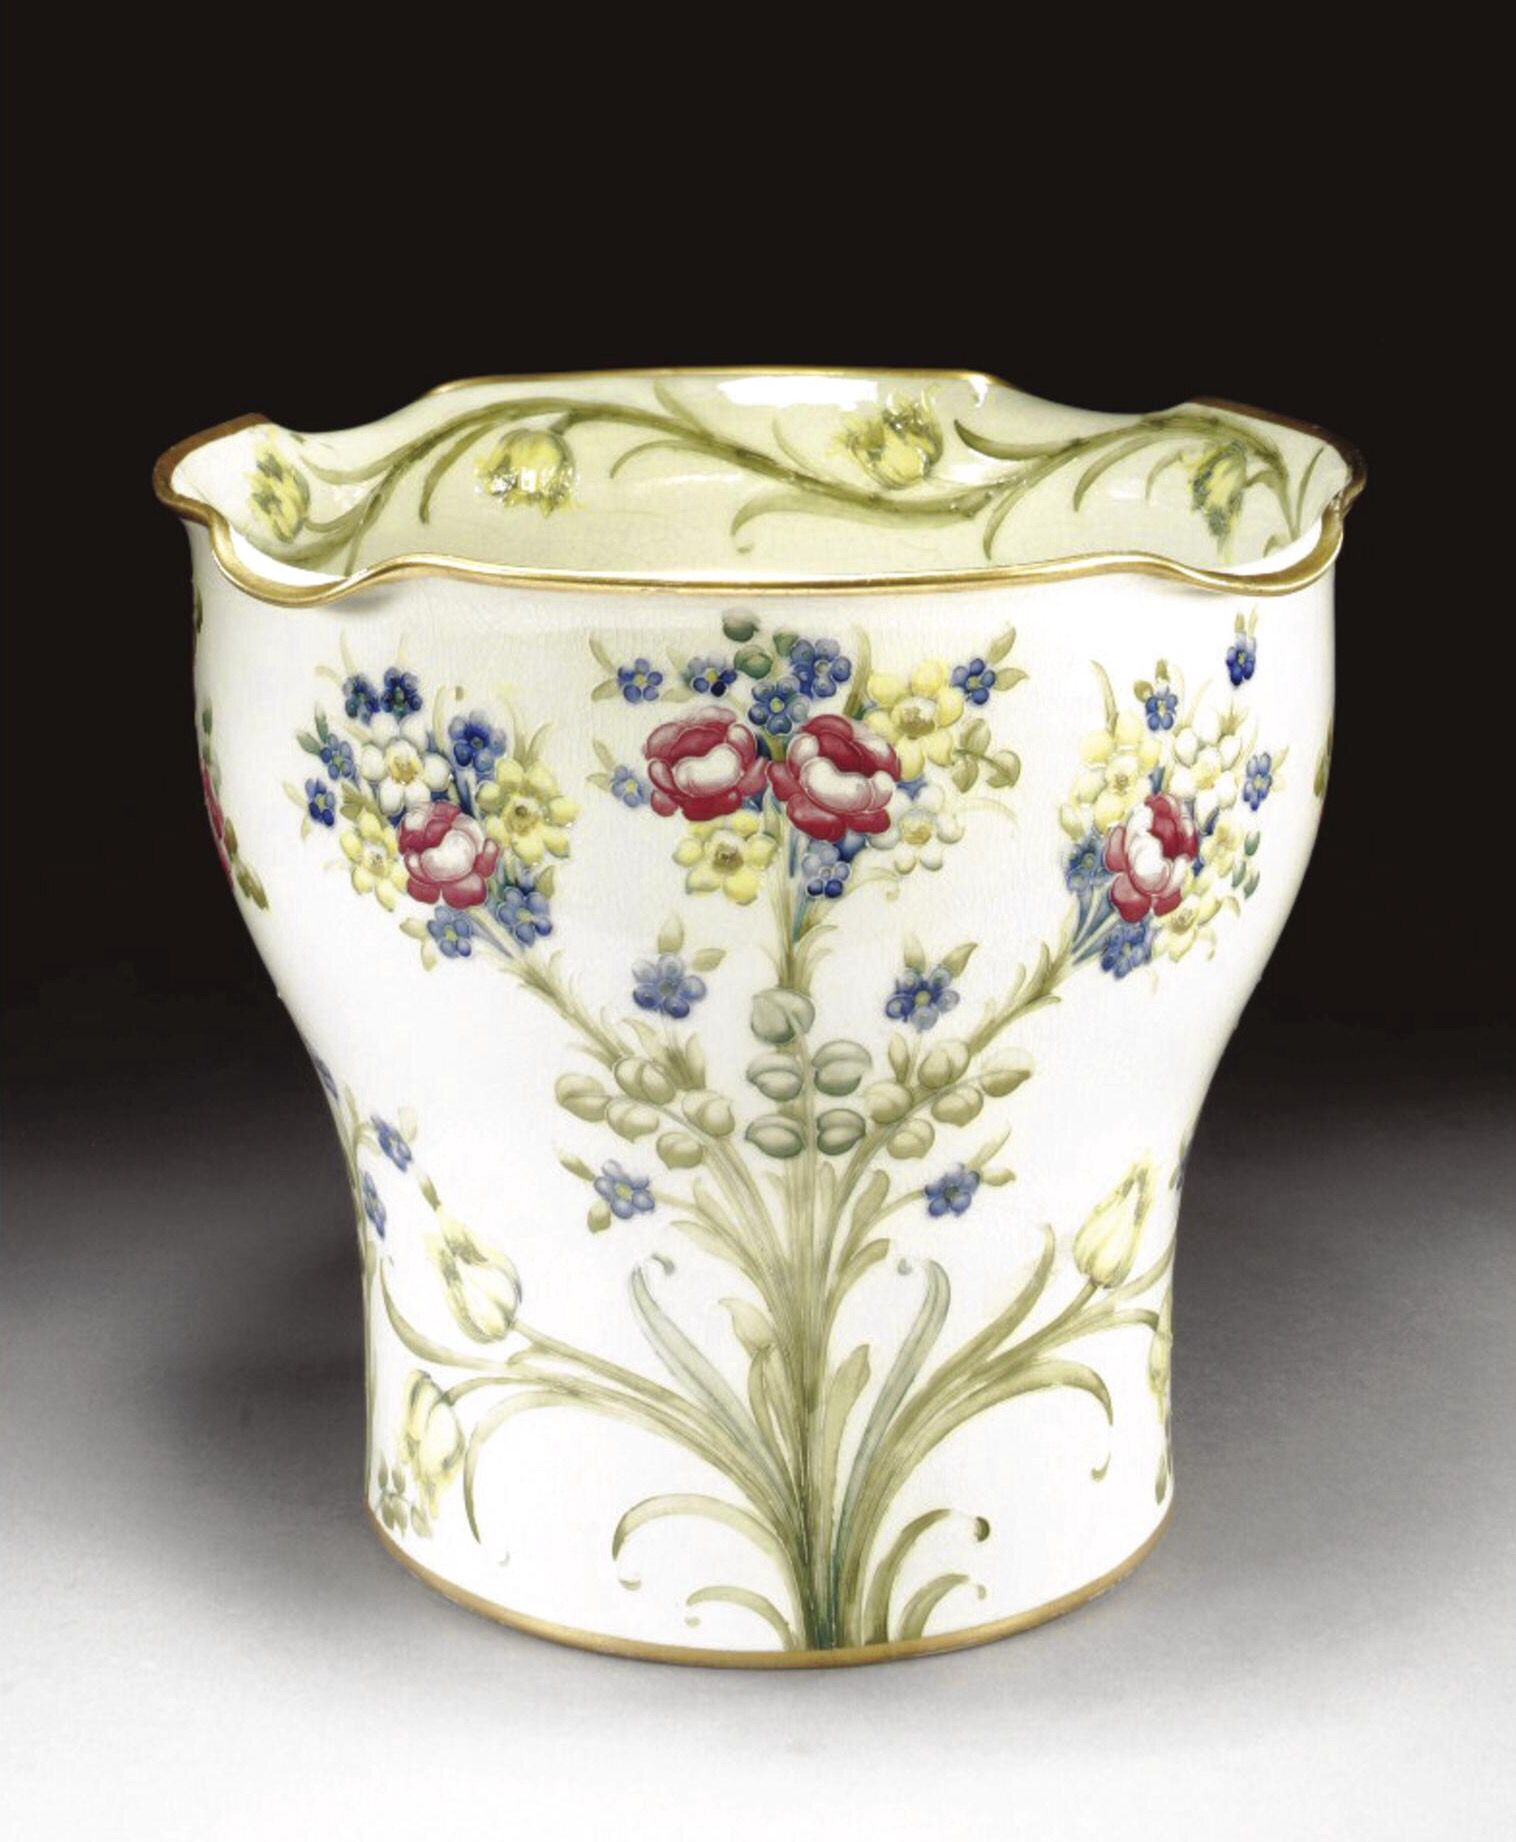 Roses tulips and forget me nots a jardinire by william roses tulips and forget me nots a jardiniere by william moorcroft for james macintyre company circa 1907 reviewsmspy